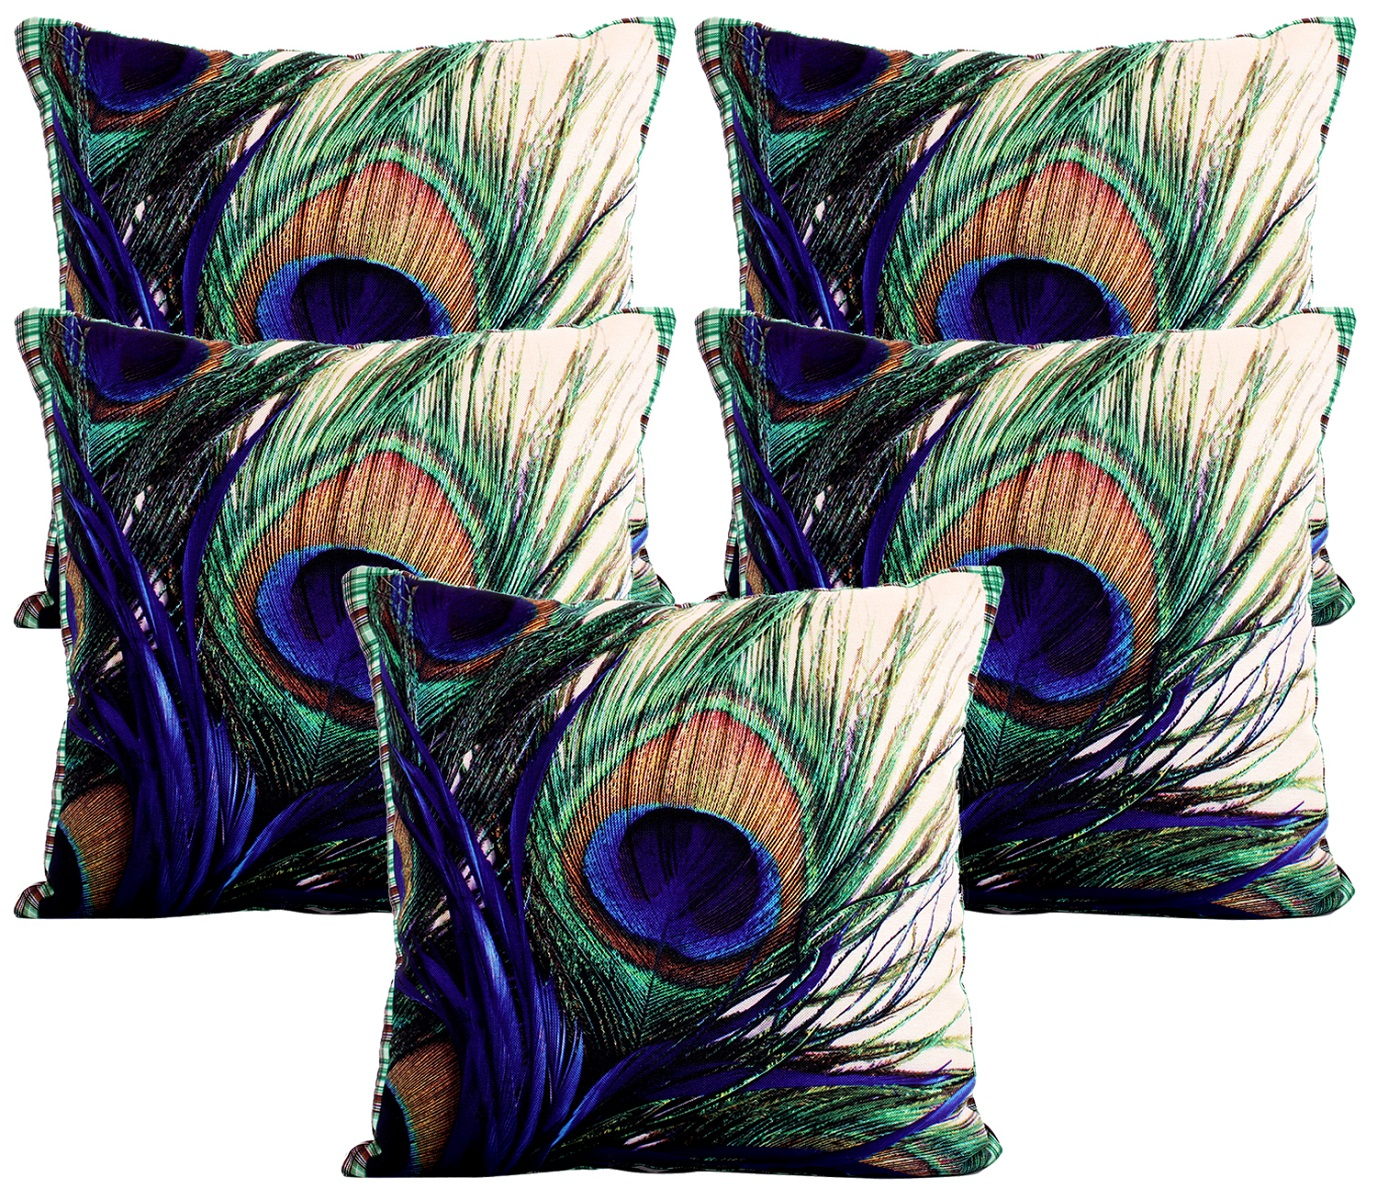 Kuber Industries Peacock Wings Design Cotton Decorative Cushion Covers 16 X 16 Inches Set Of 5